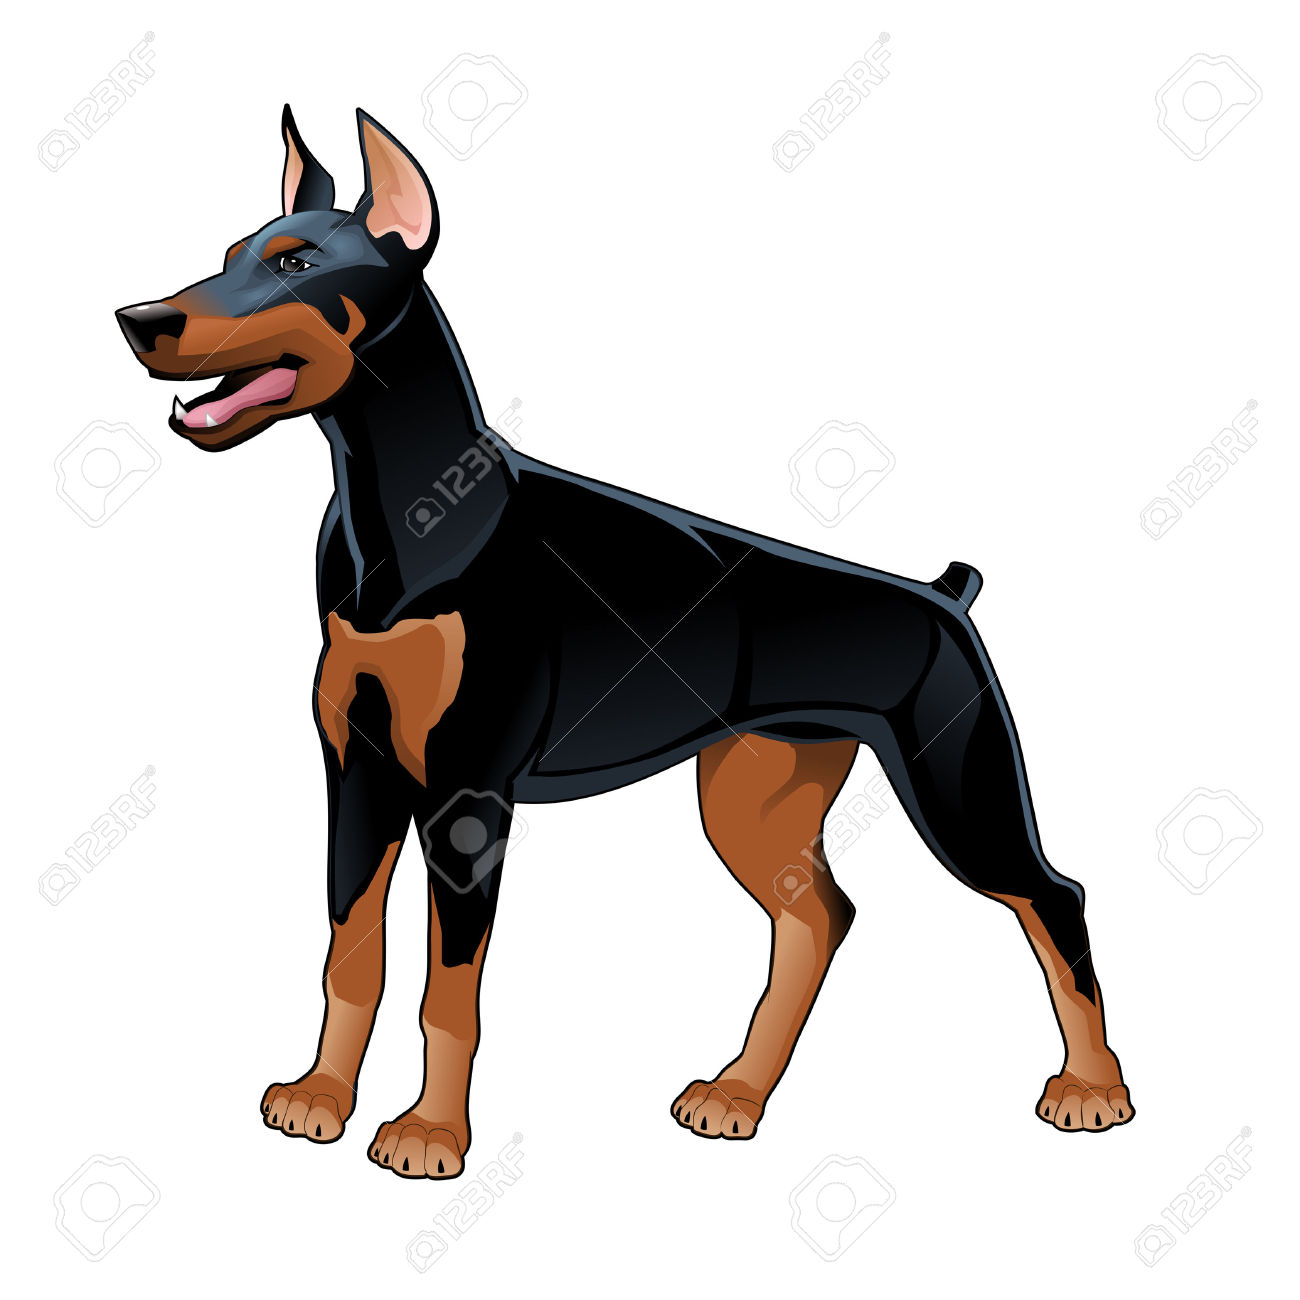 Doberman Pinscher clipart #4, Download drawings